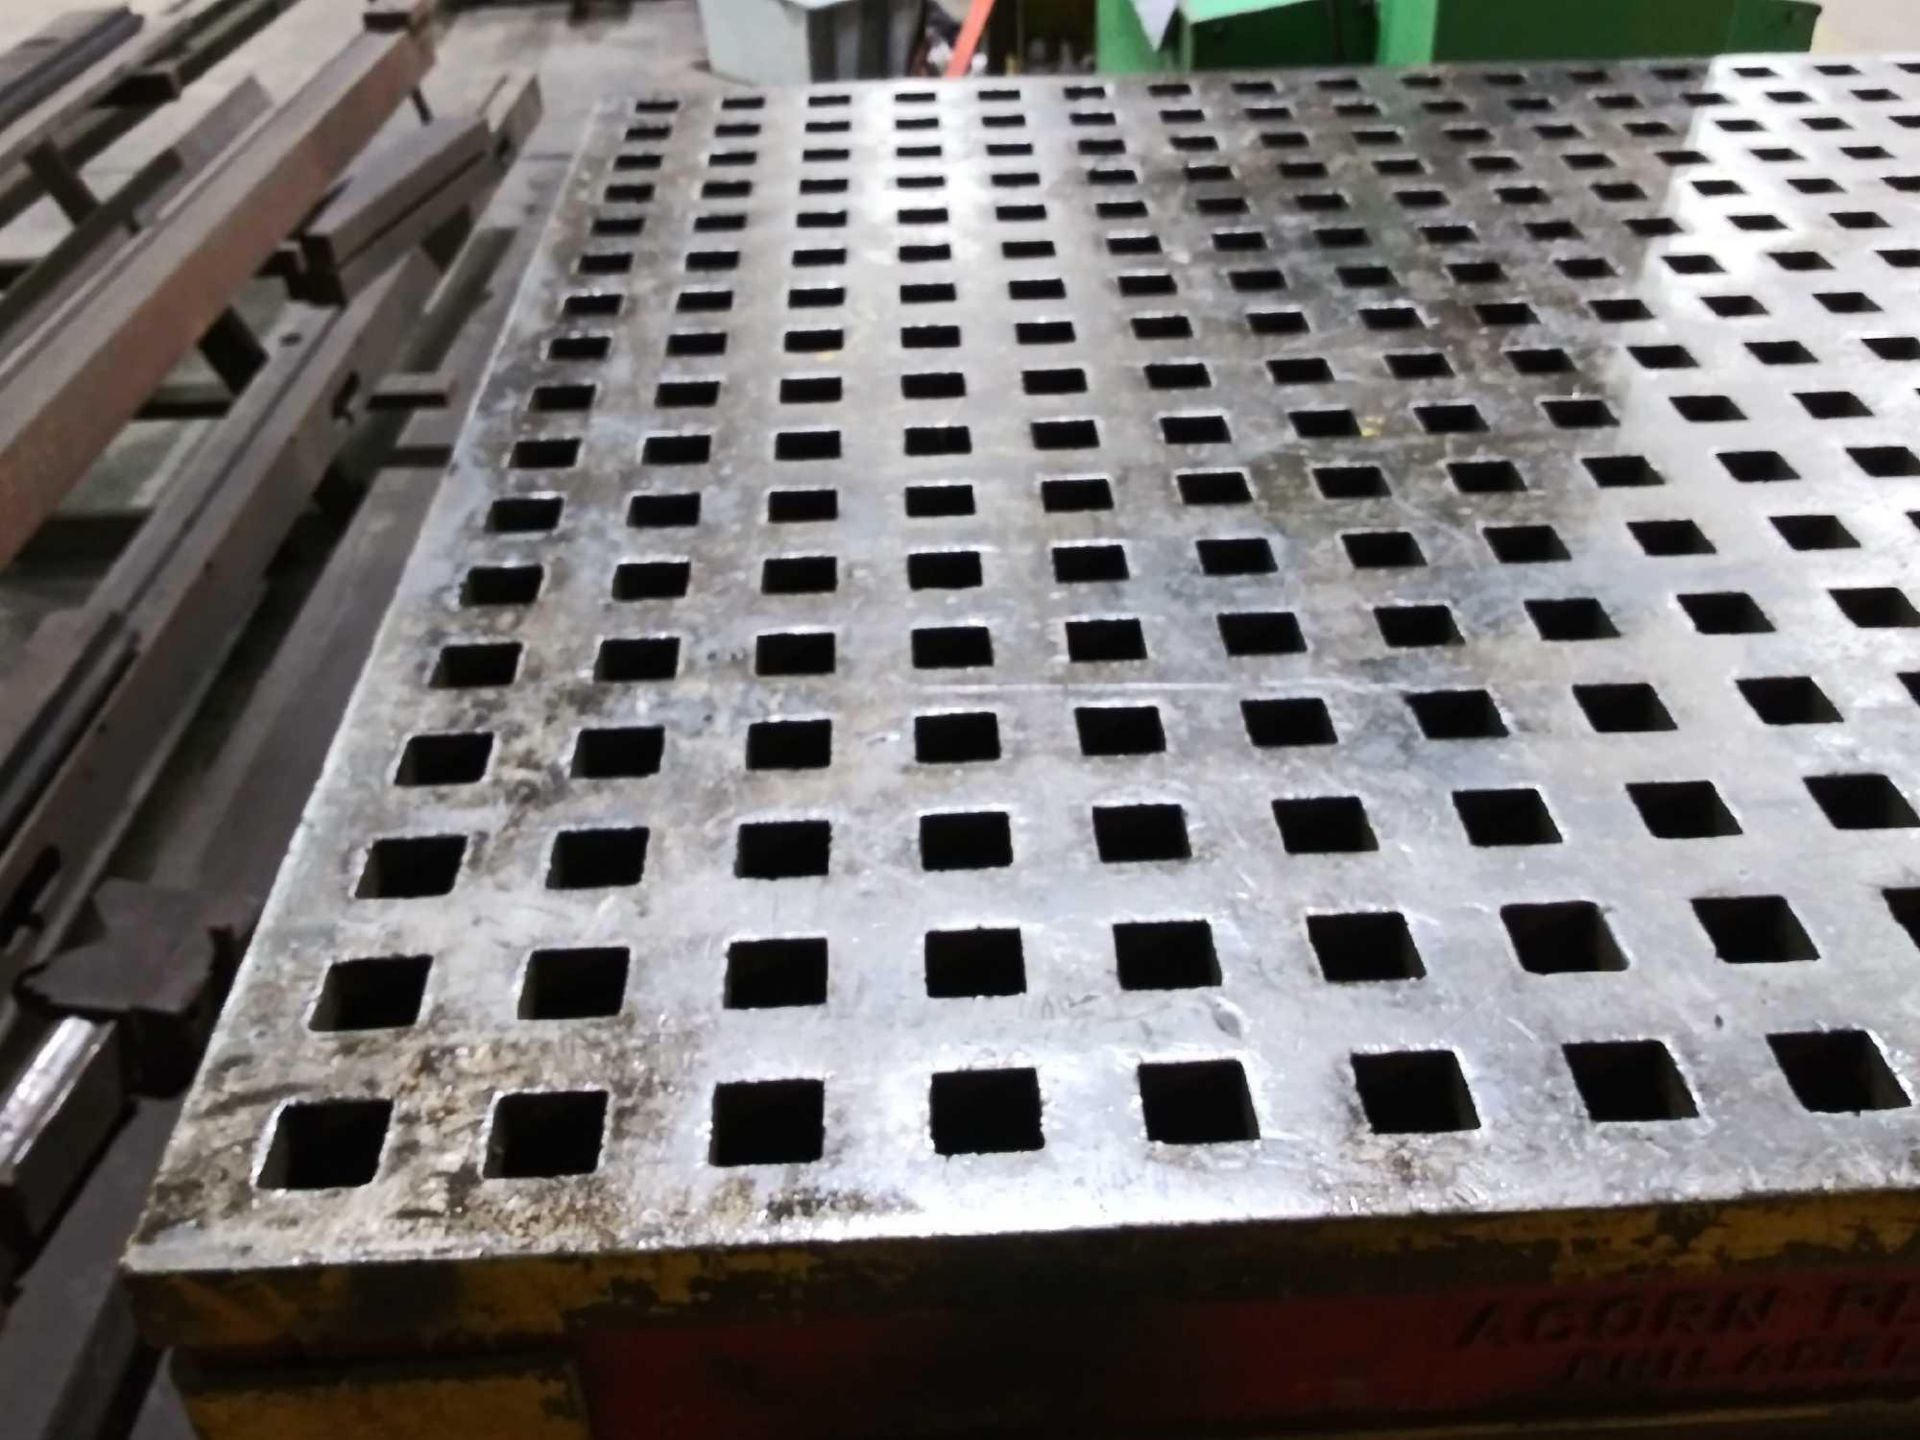 """Acorn Platens & Tools Welding Table, 60""""x60""""x30"""", square hole dimensions 1-3/4"""", inv1080 - Image 7 of 15"""